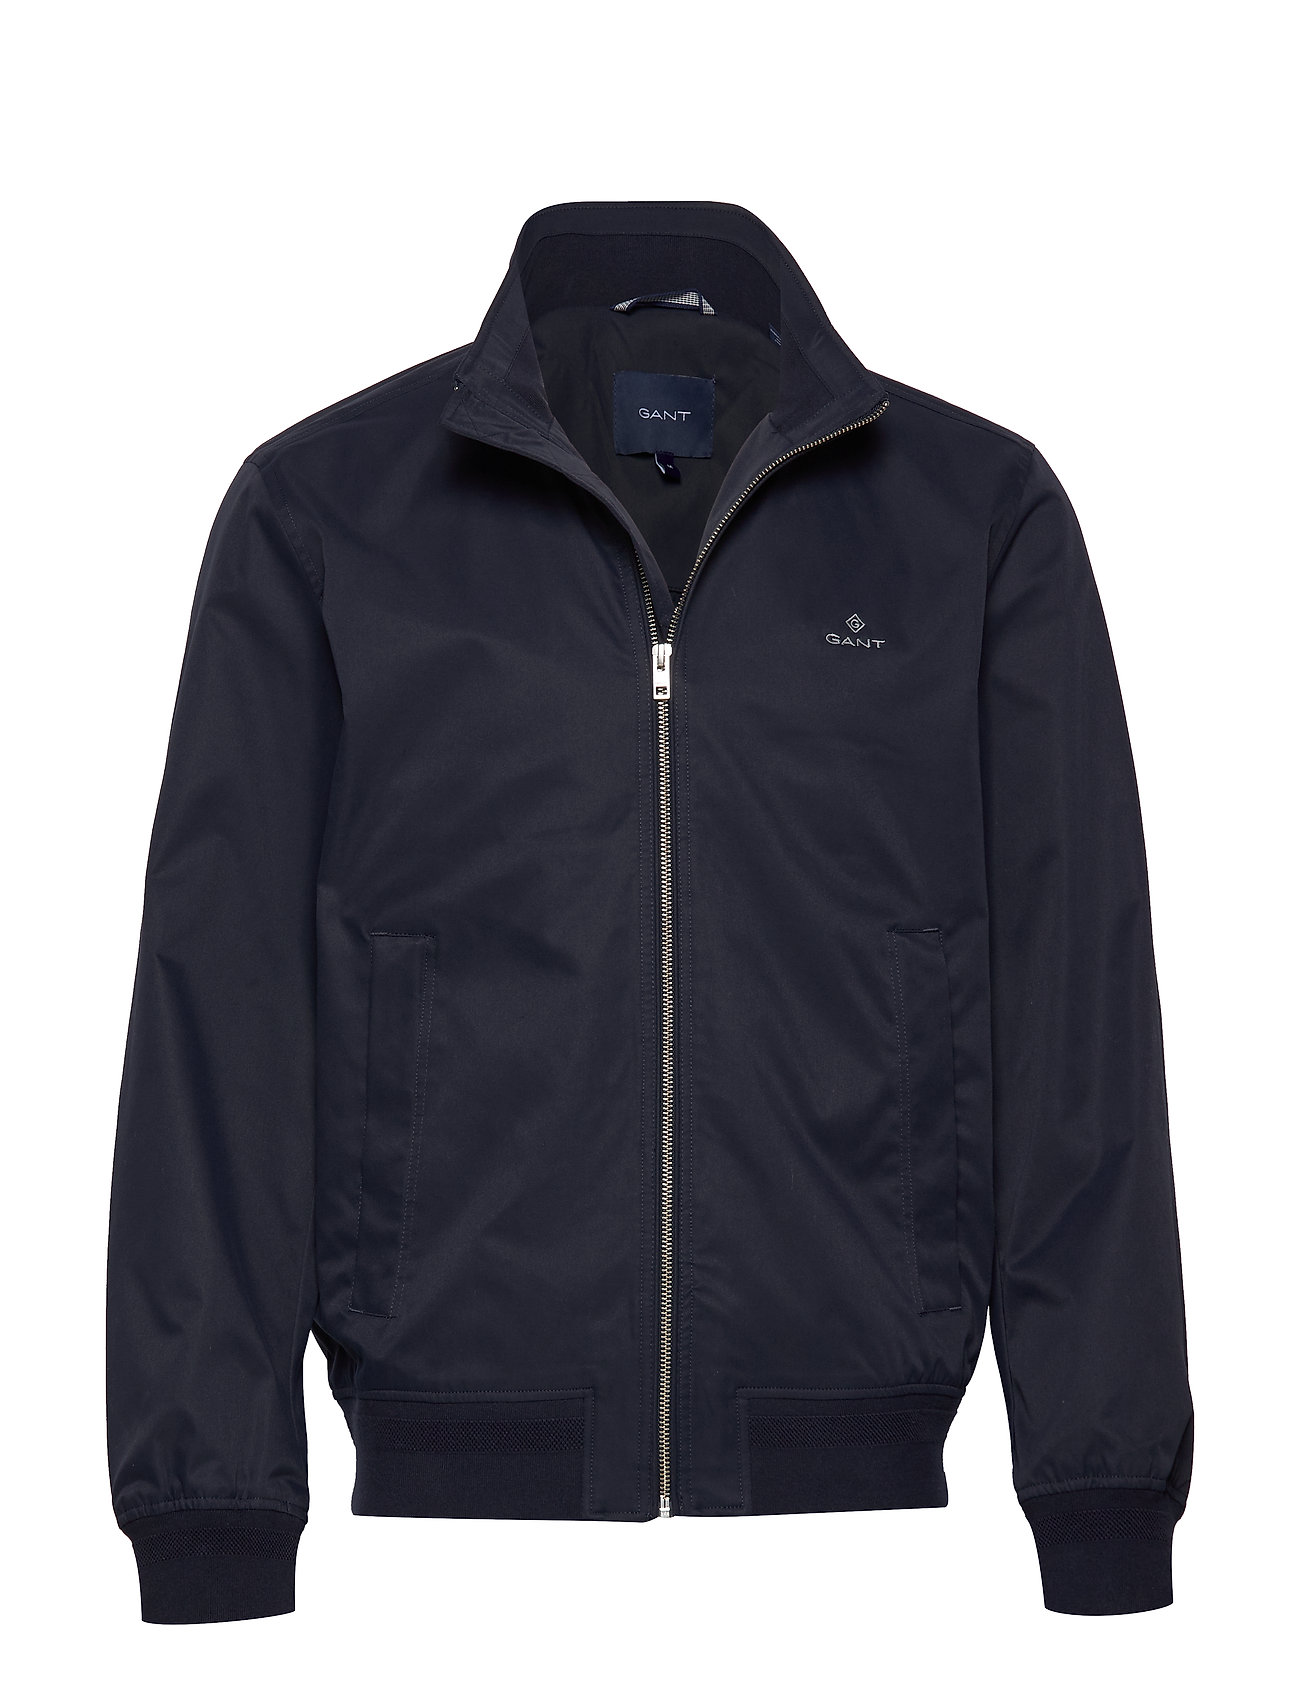 Gant D1. THE SPRING HAMPSHIRE JACKET - EVENING BLUE